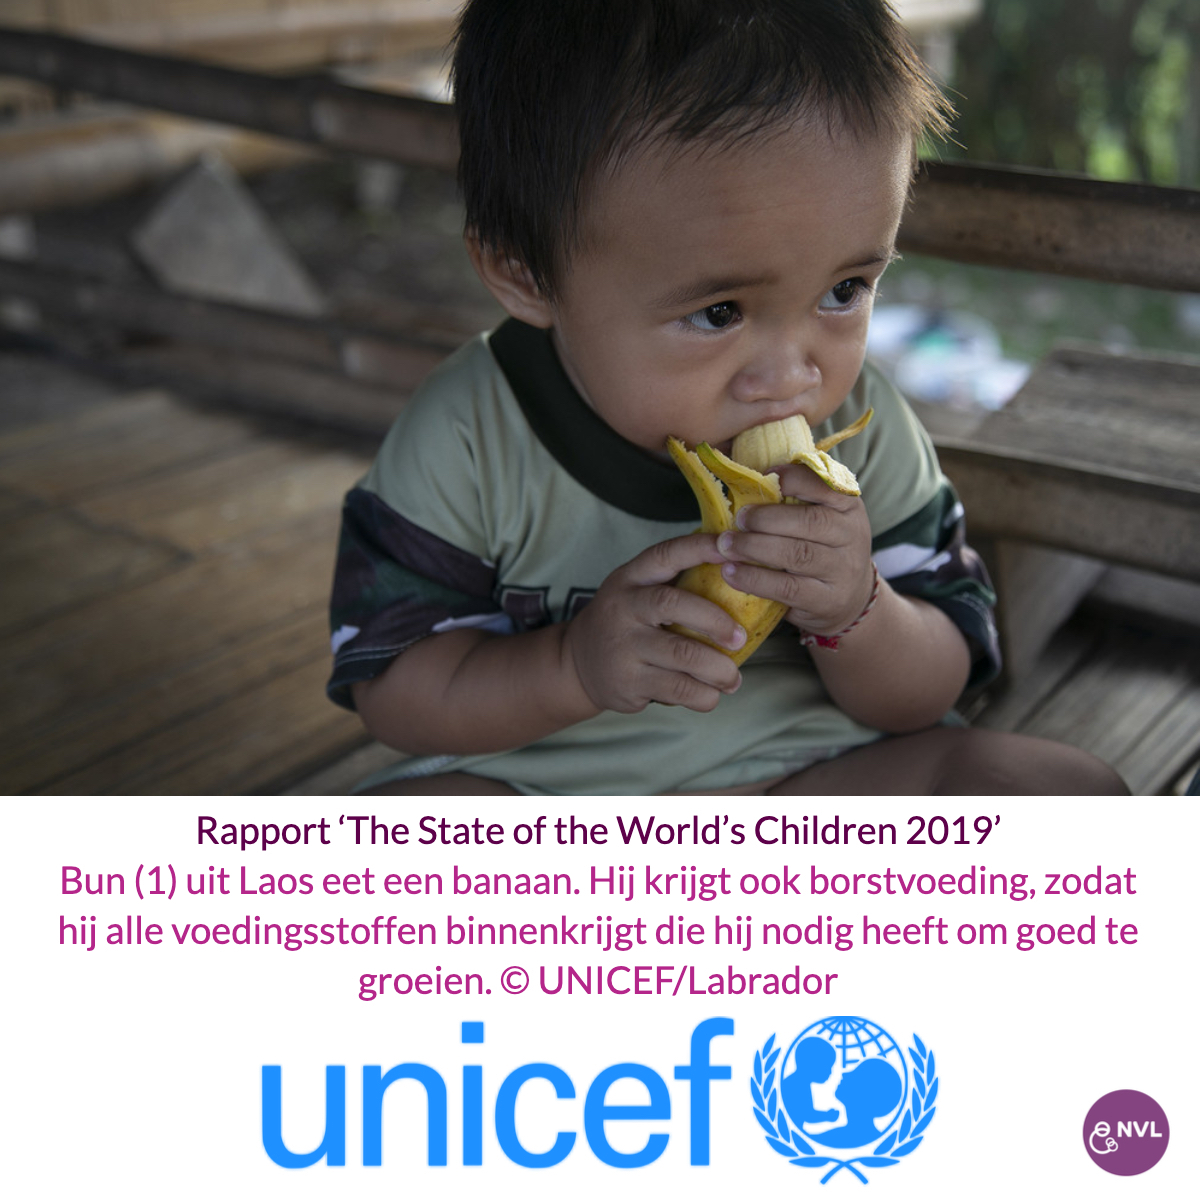 UNICEF Publiceert Rapport 'The State Of The World's Children 2019'